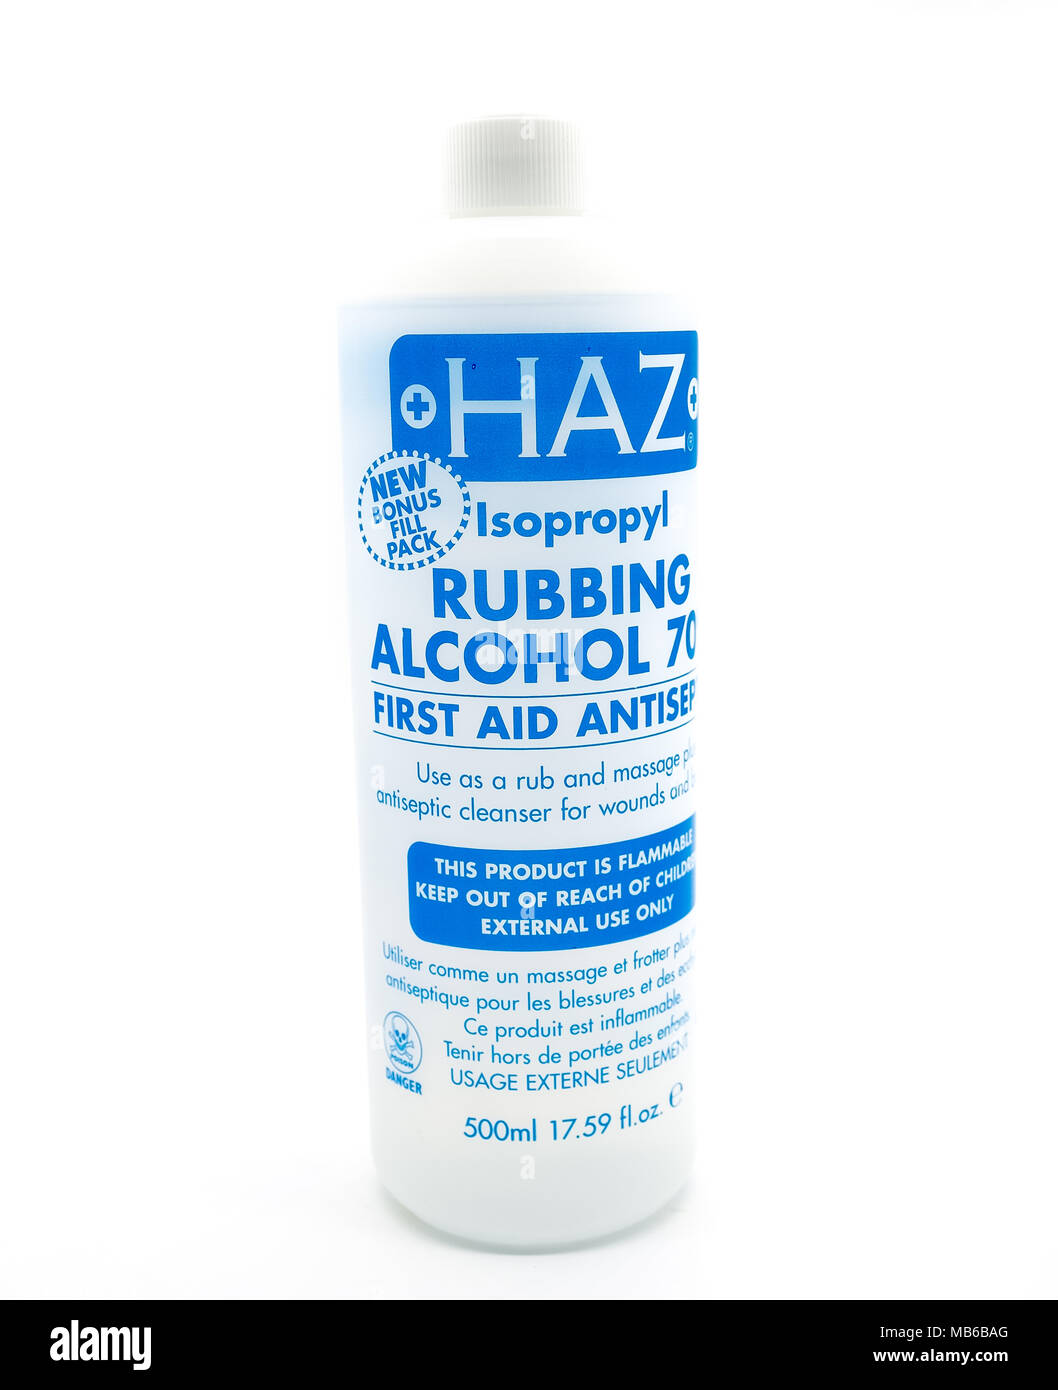 Largs, Scotland, UK - April 06, 2018: Haz Isopropyl 70% Rubbing Alcohol in Recyclable Plastic Bottle and in line with recent UK eco initiatives. - Stock Image